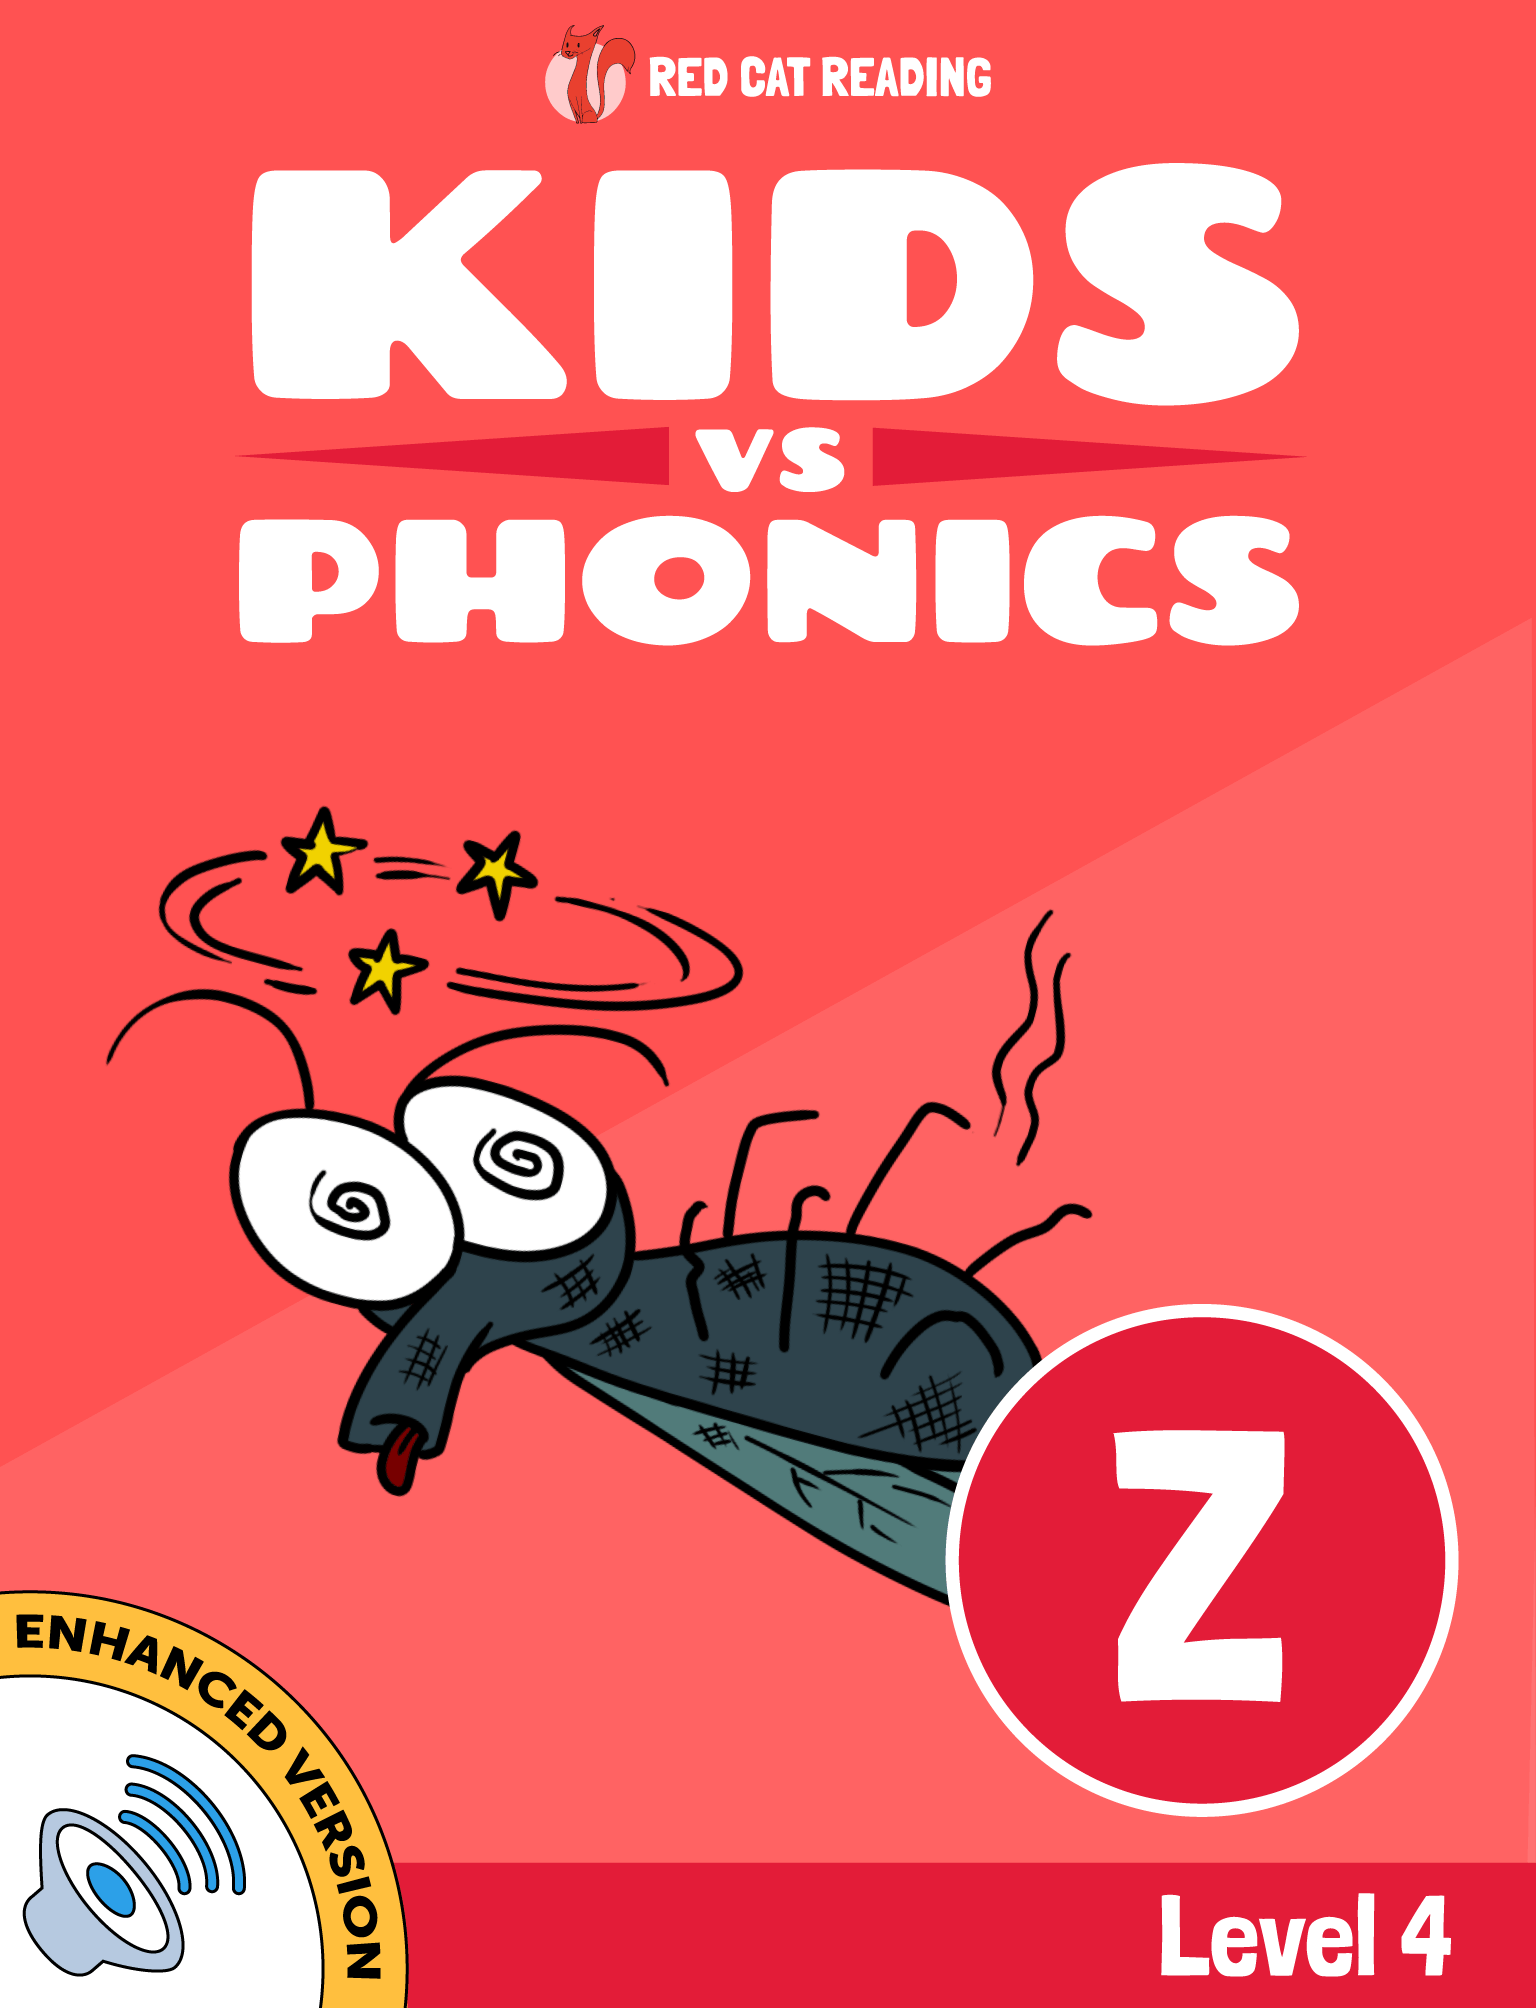 Red Cat Reading Kids vs Phonics Level 4 Phonics Z Sound